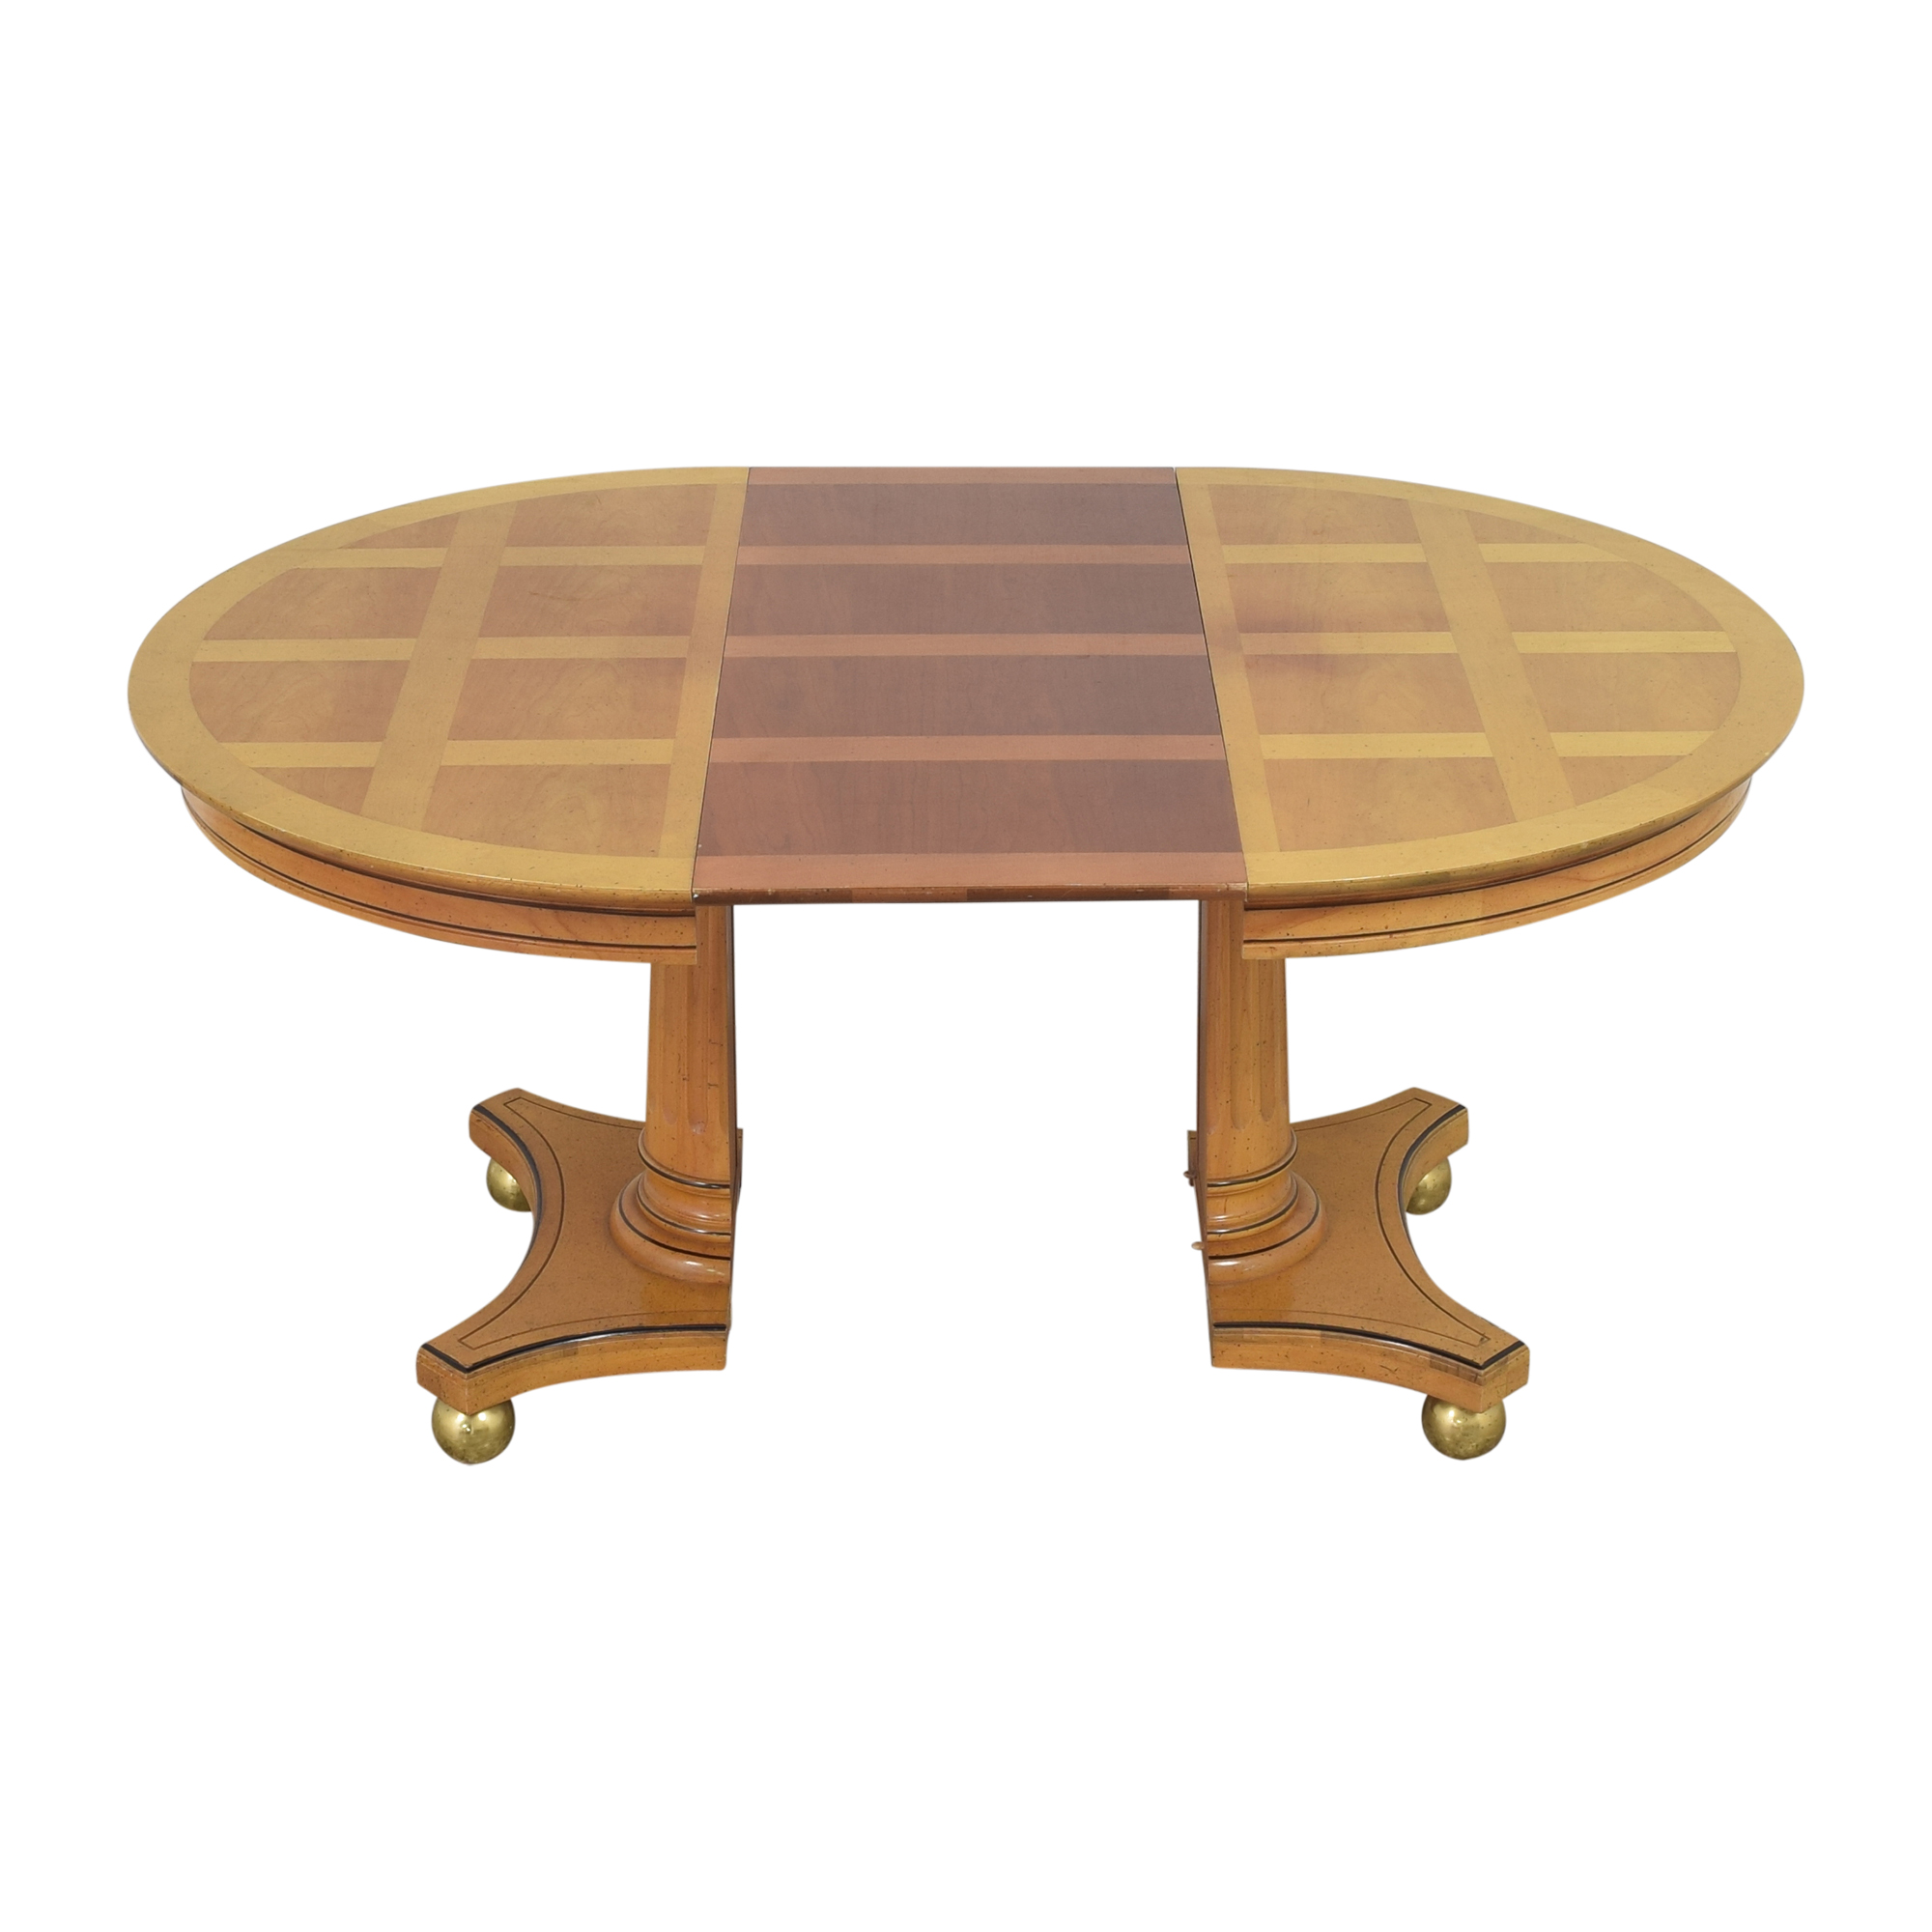 Jefferson Wood Working Jefferson Wood Working Extendable Round Dining Table coupon